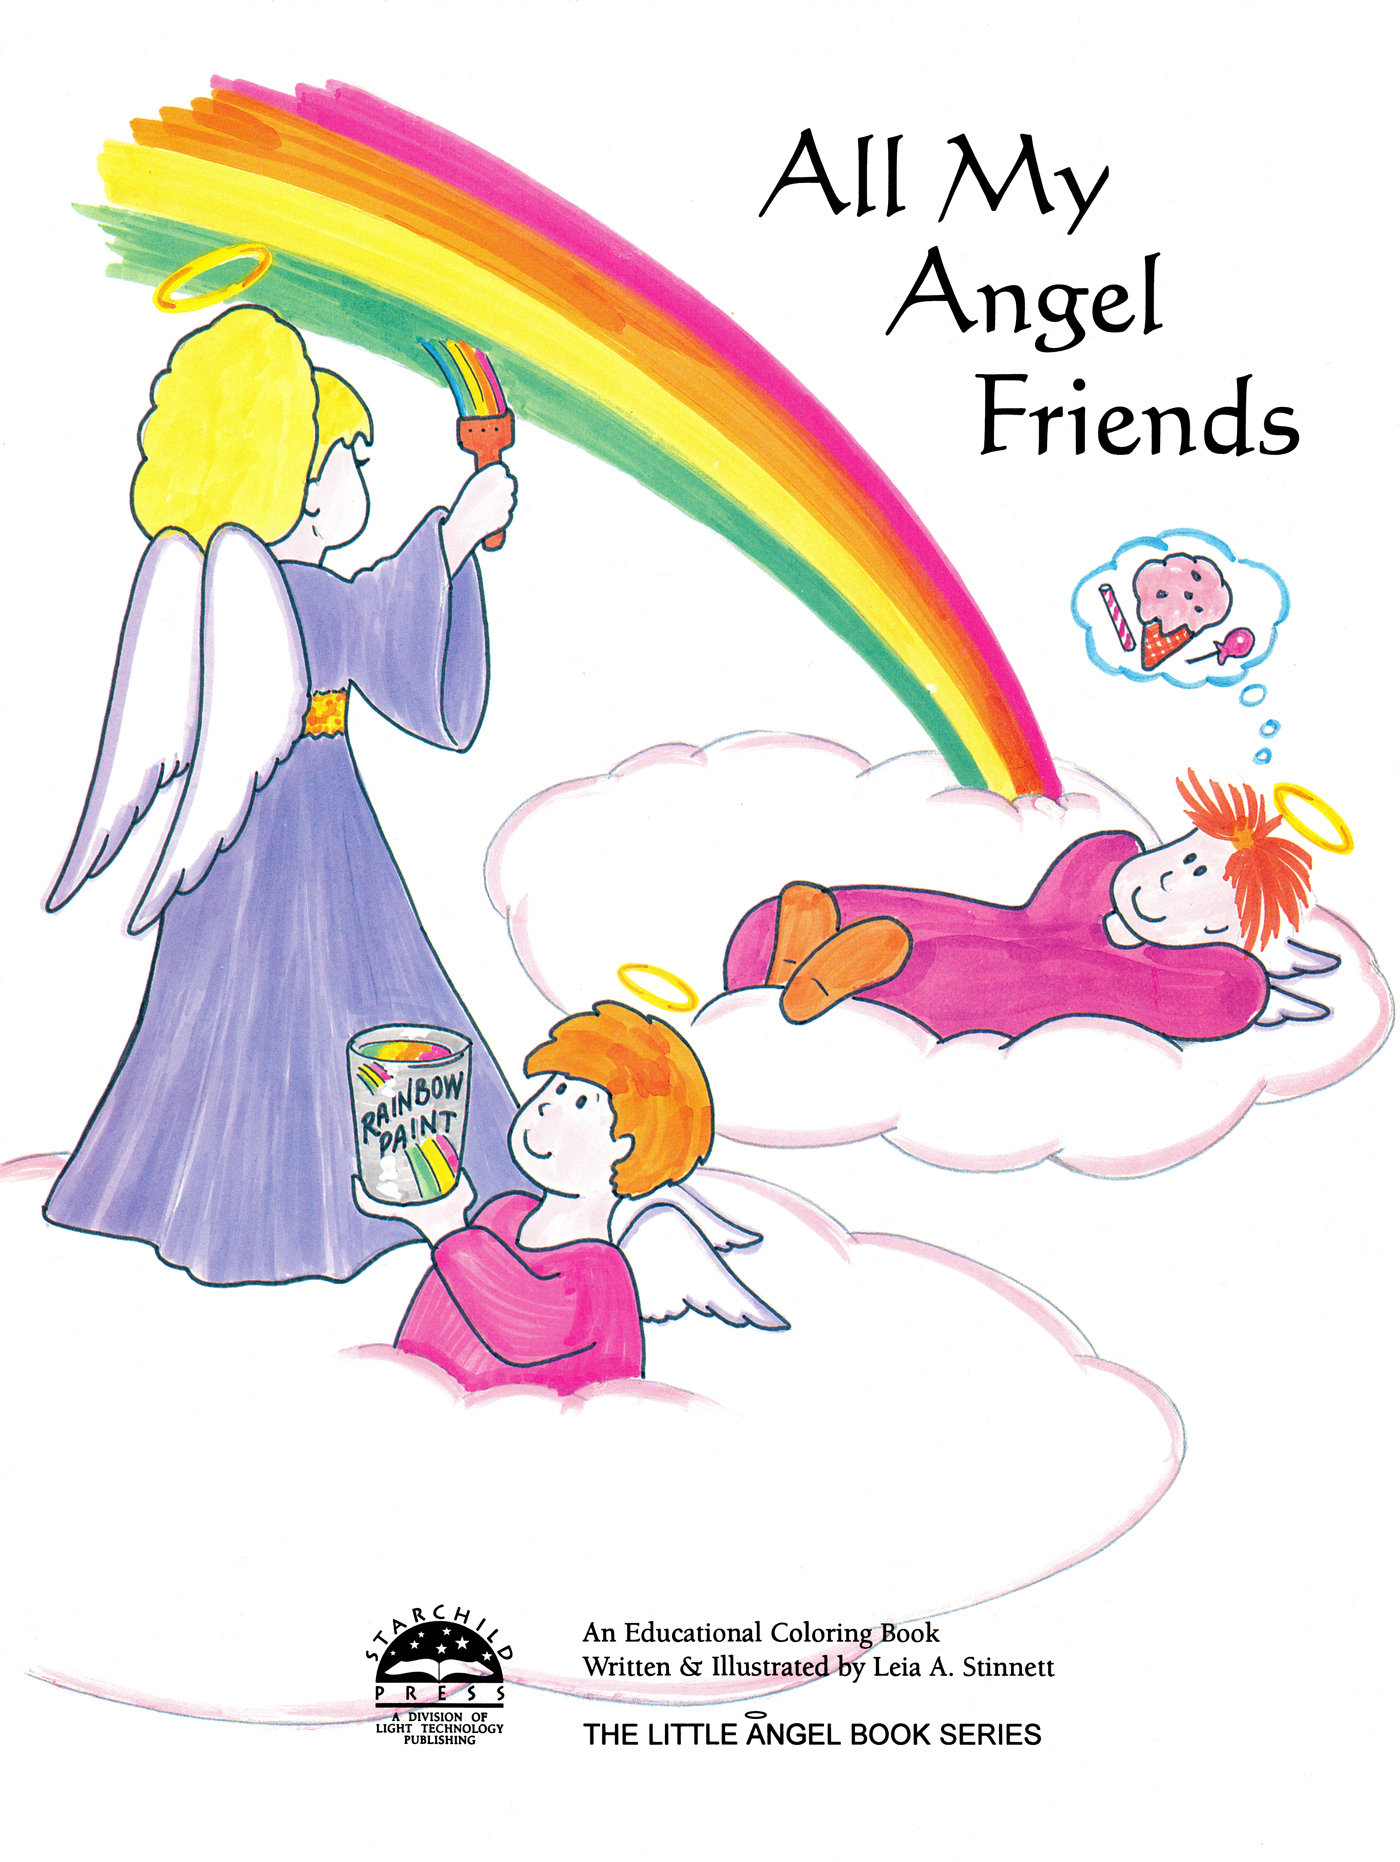 All My Angel Friends